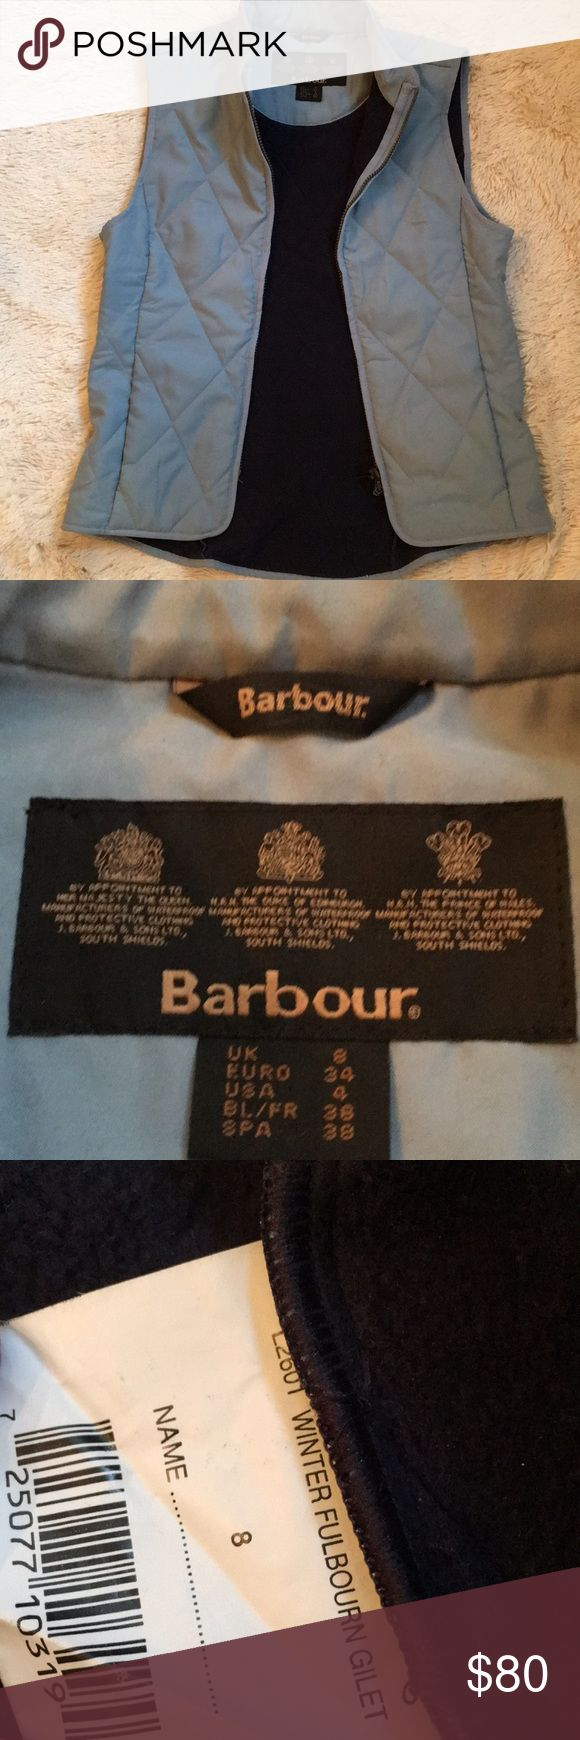 Barbour SLATE BLUE  vest This is a terrific in excellent condition Barbour vest. Winter fulbourn gilet vest.  The color is beautiful  prefect with jeans. Barbour Jackets & Coats Vests